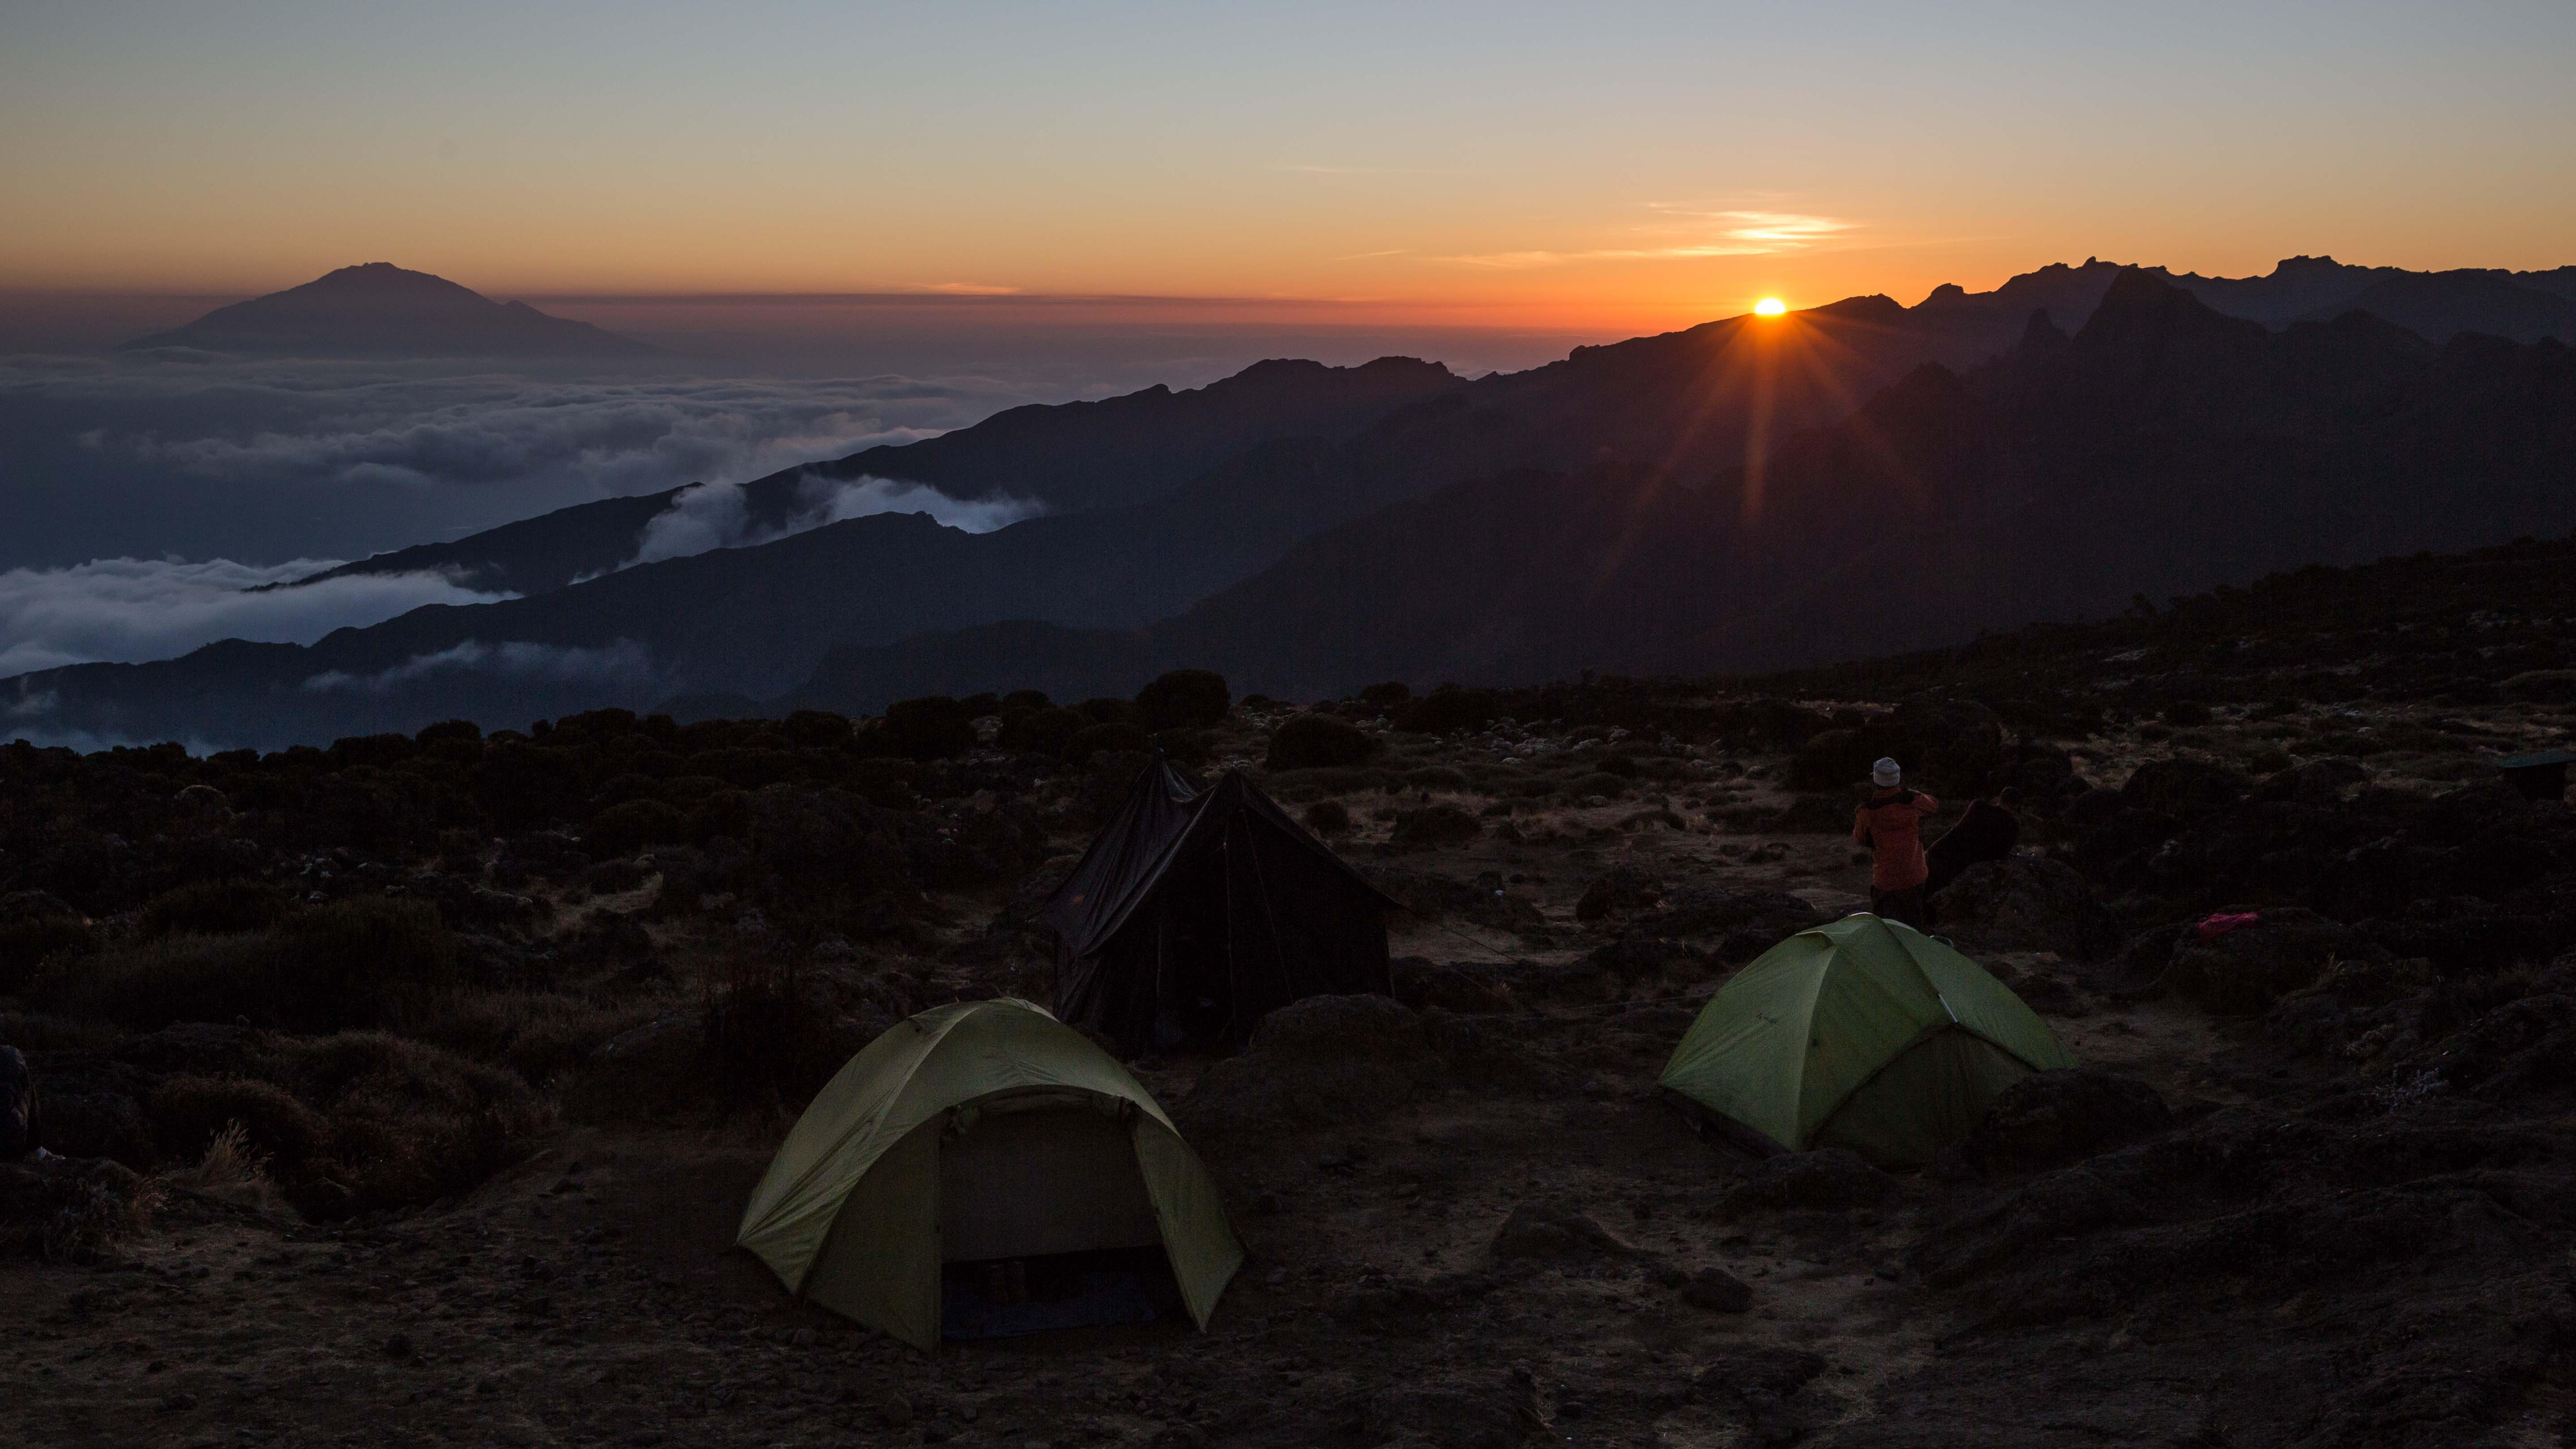 Machame Camp (9.840ft/3.000m) to Shira Camp (12.600ft/3840m)